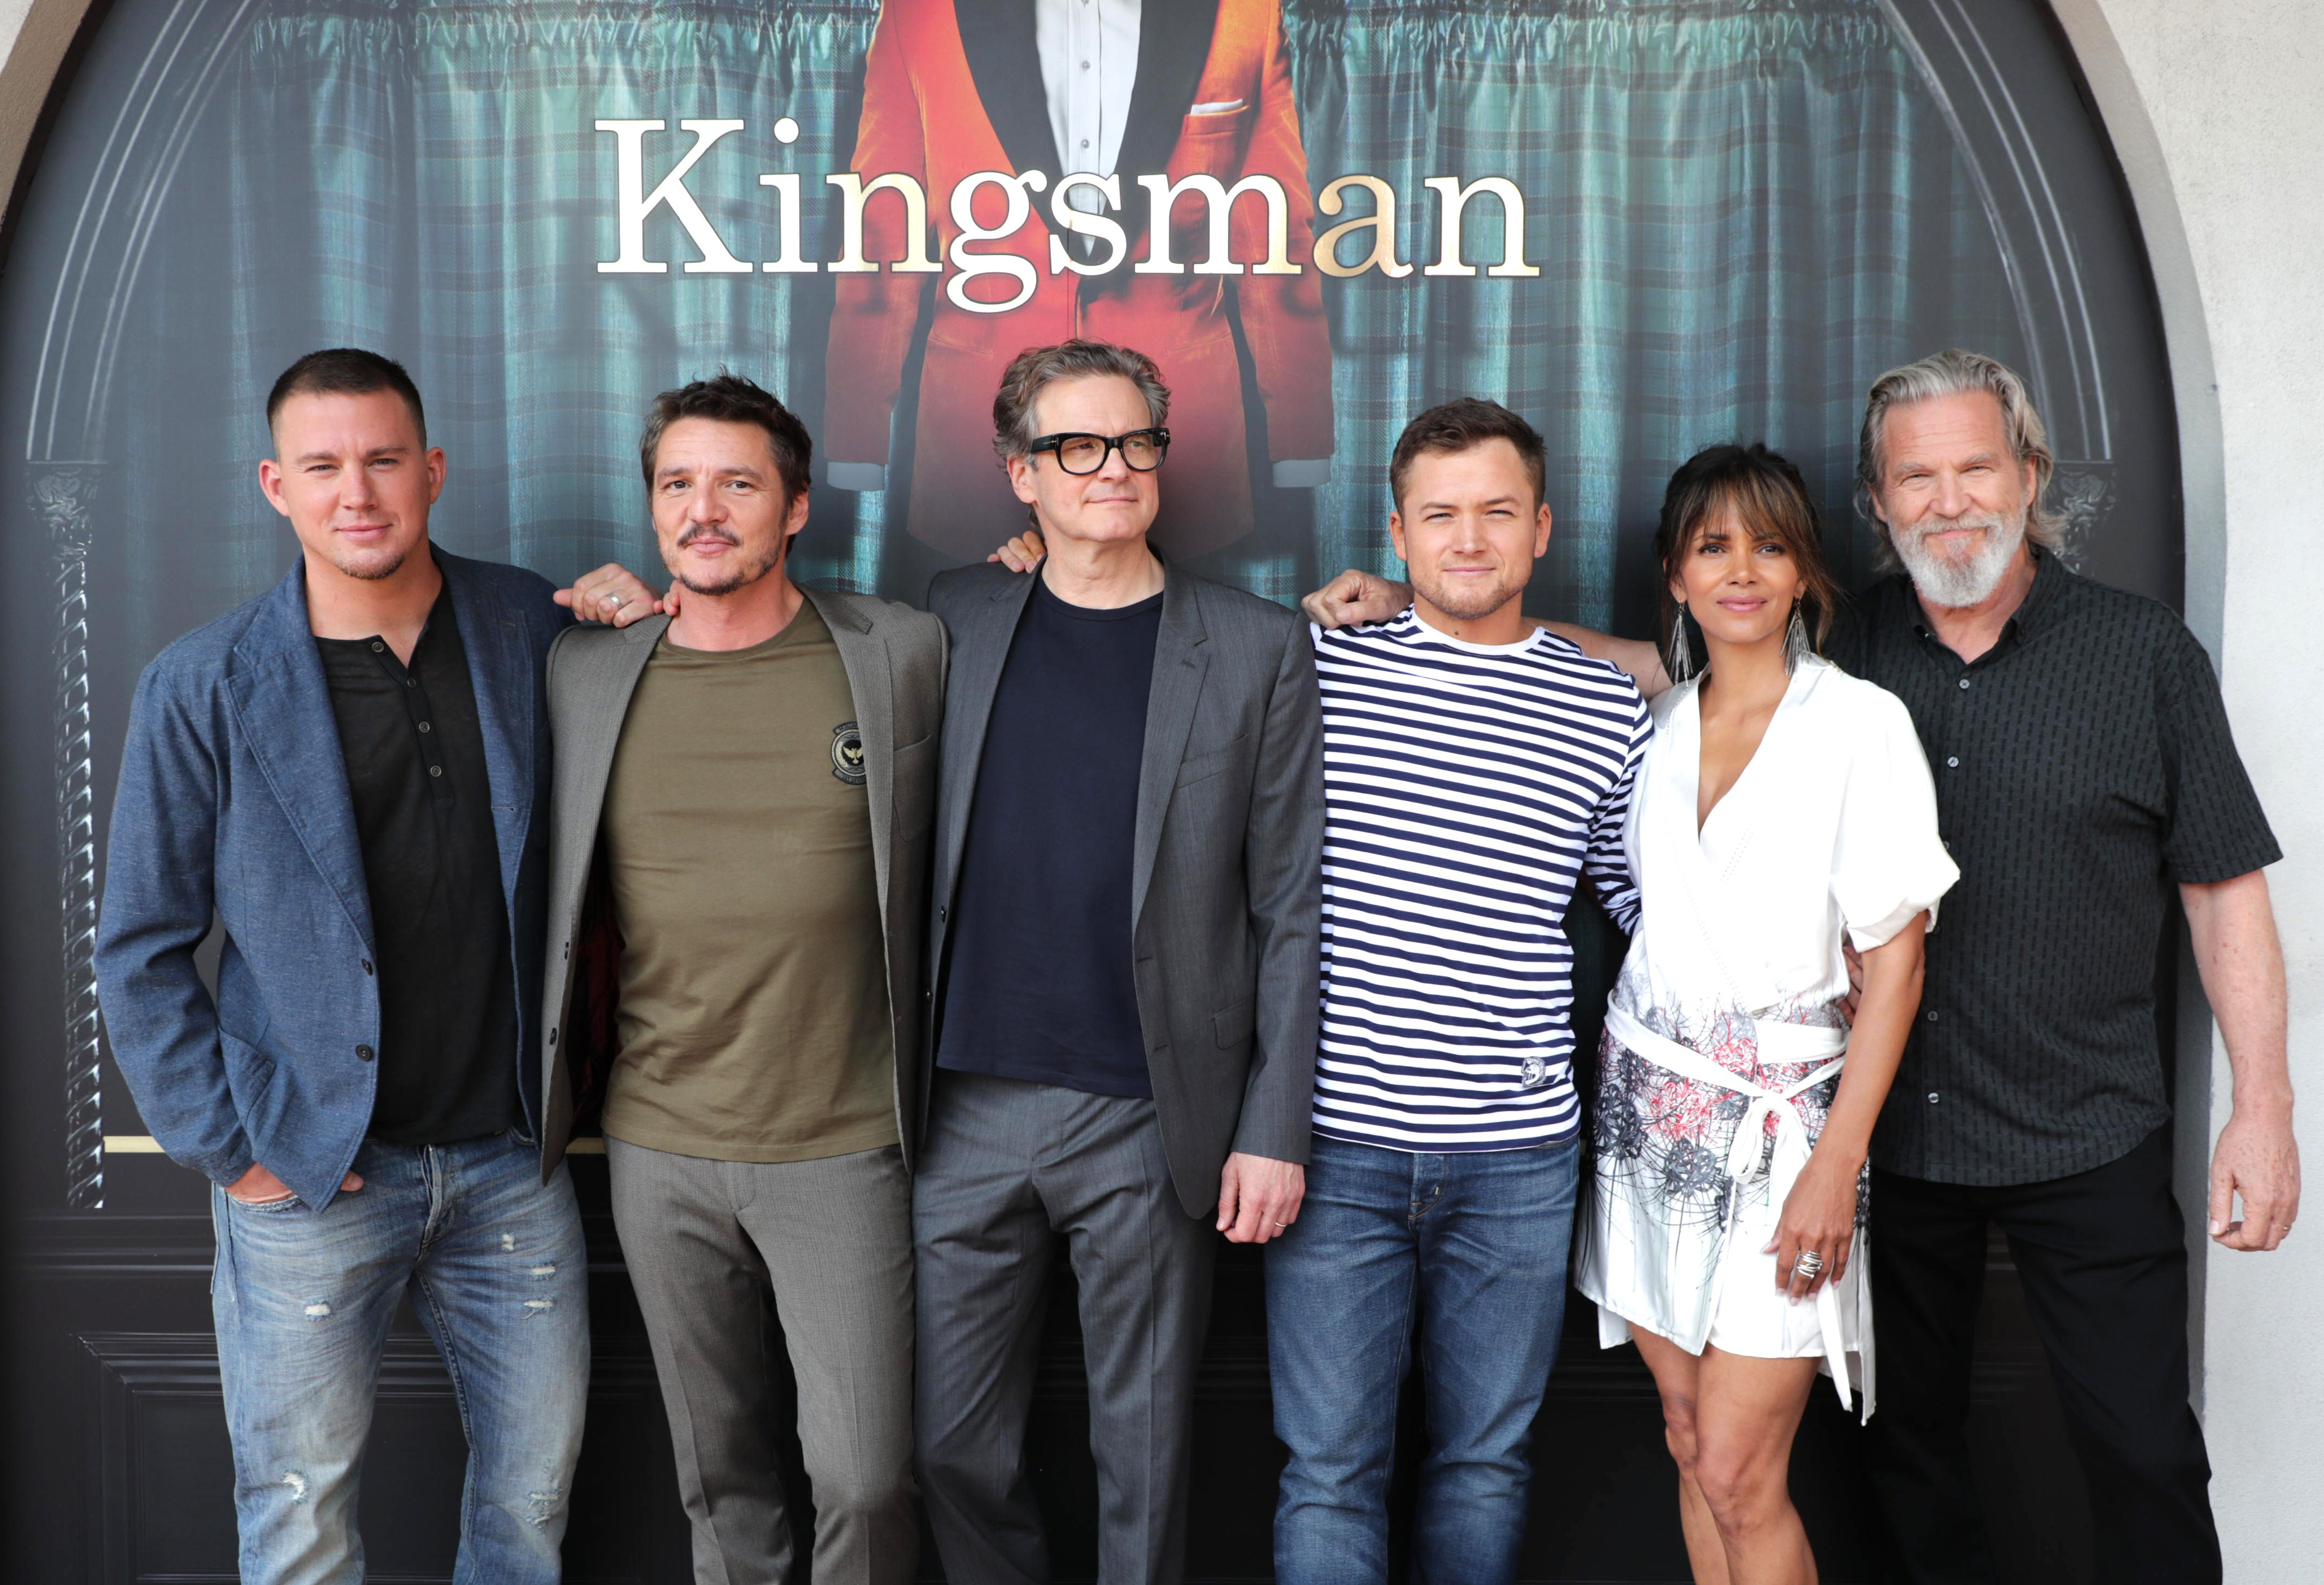 Channing Tatum, Pedro Pascal, Colin Firth, Taron Egerton, Halle Berry and Jeff BridgesThe cast of 'Kingsman: The Golden Circle' outside of the Kingsman tailor shop at 2017 Comic Con, San Diego, USA - 19 Jul 2017